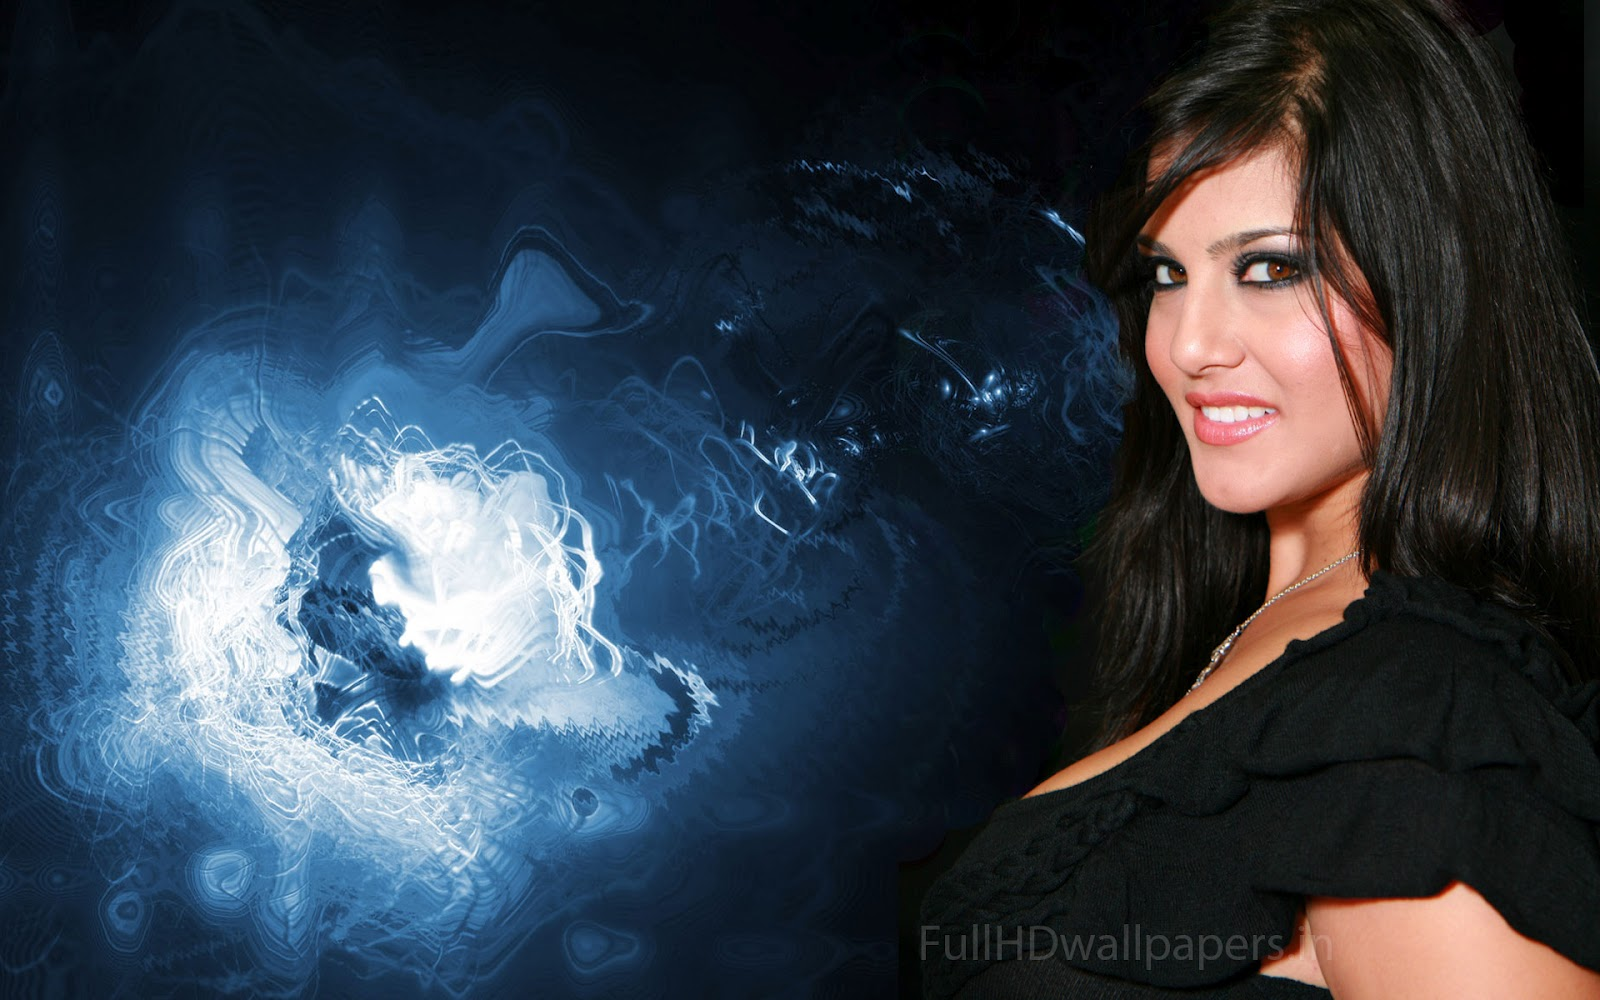 Sunny Leone HD Wallpapers 2012, Sunny Leone HD New Wallpapers 2012 ...